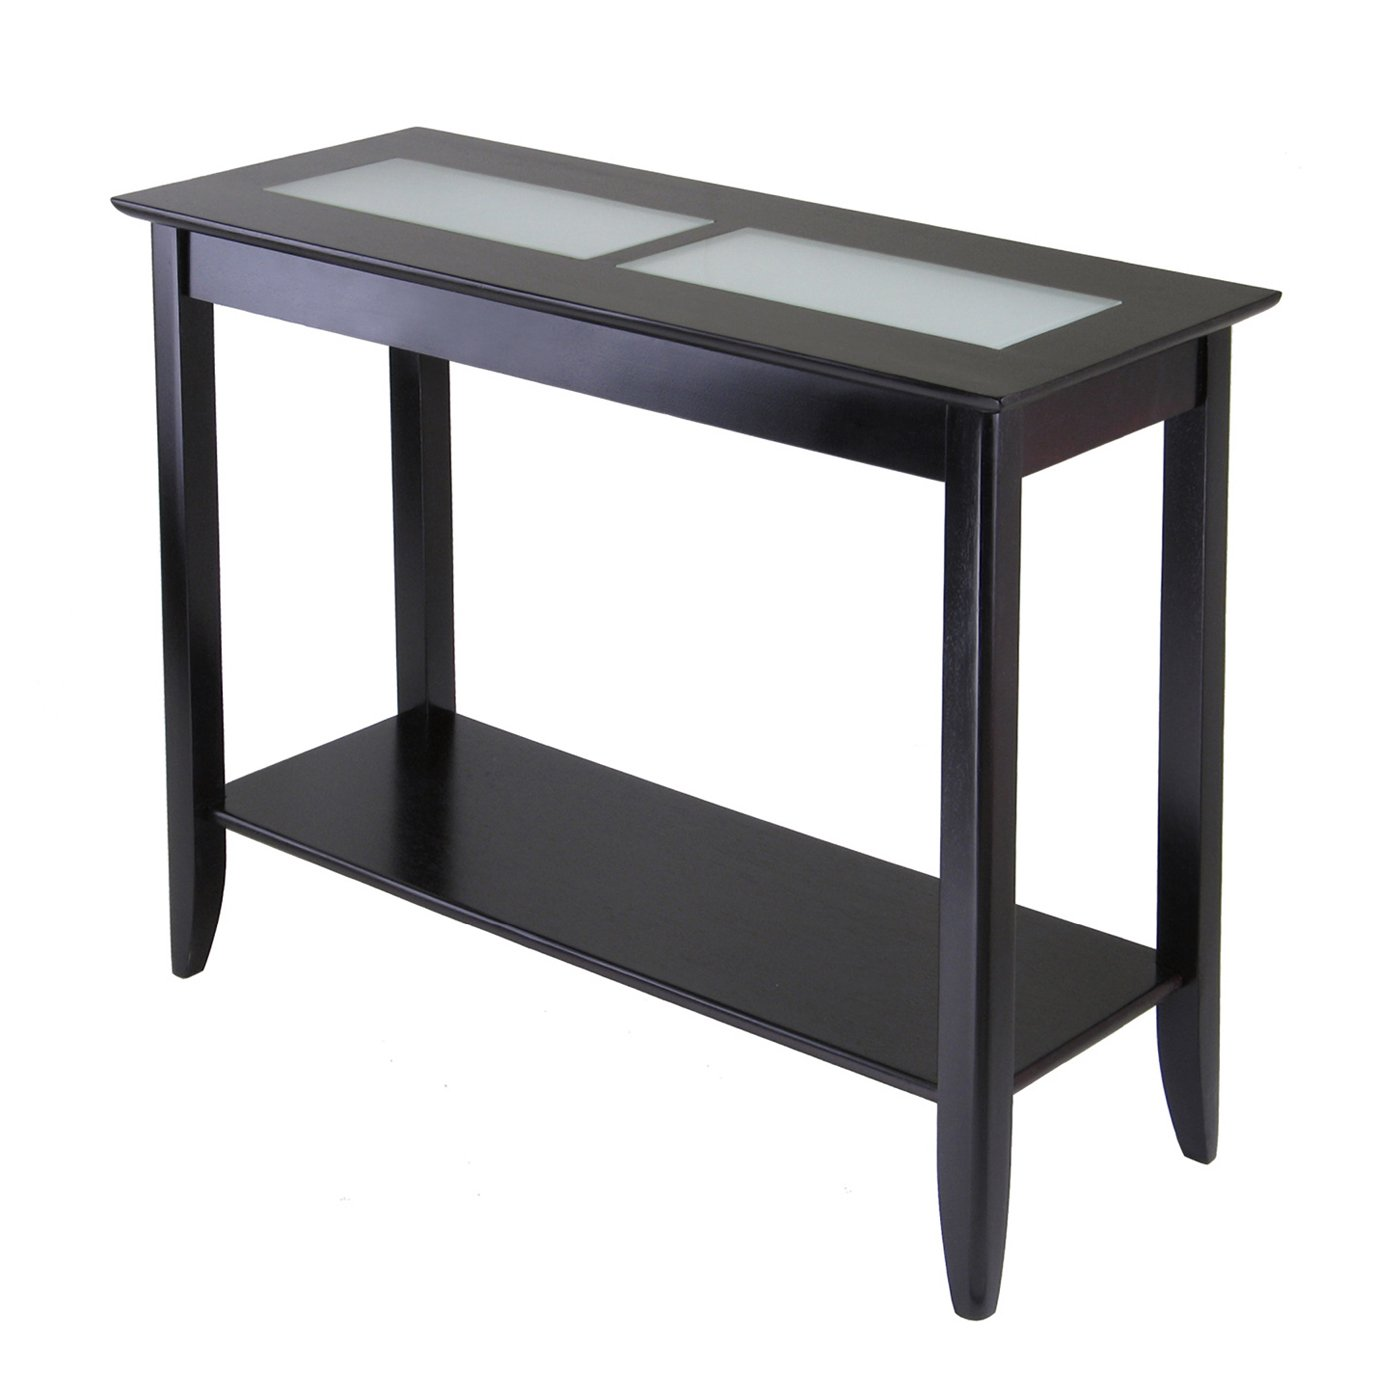 top lewis target gold outdoor calico amazing hafley white hillside mirrored bamboo remarkable black console glass tables table owings accent full size folding nic mosaic bistro